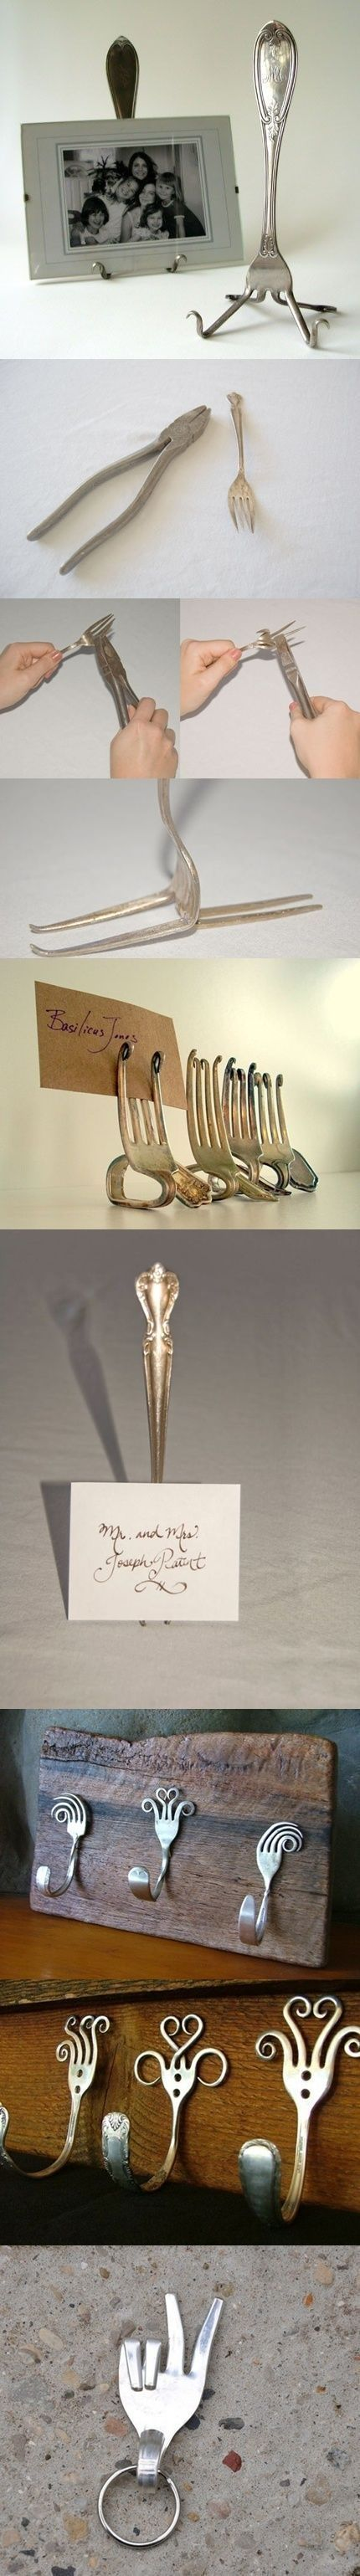 Upcycle decore, recycle decor, repurpose, thrift store finds, decore makeover, flatware, upcycle old silver, vintage utensils by Stoeps